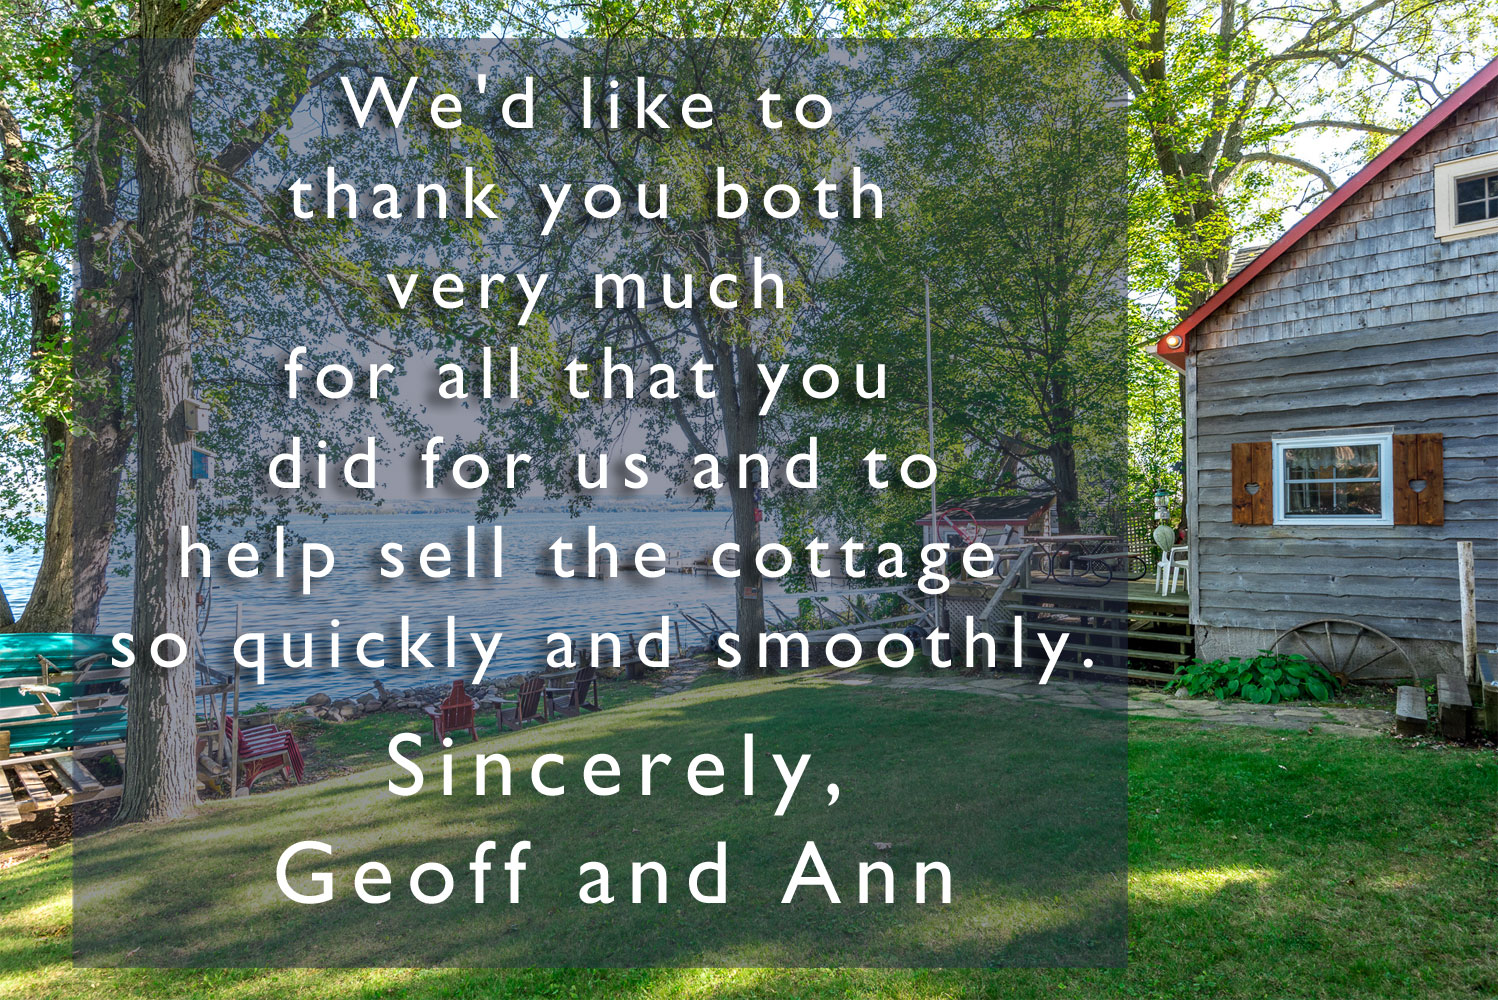 Geoff and Ann Appreciation Note